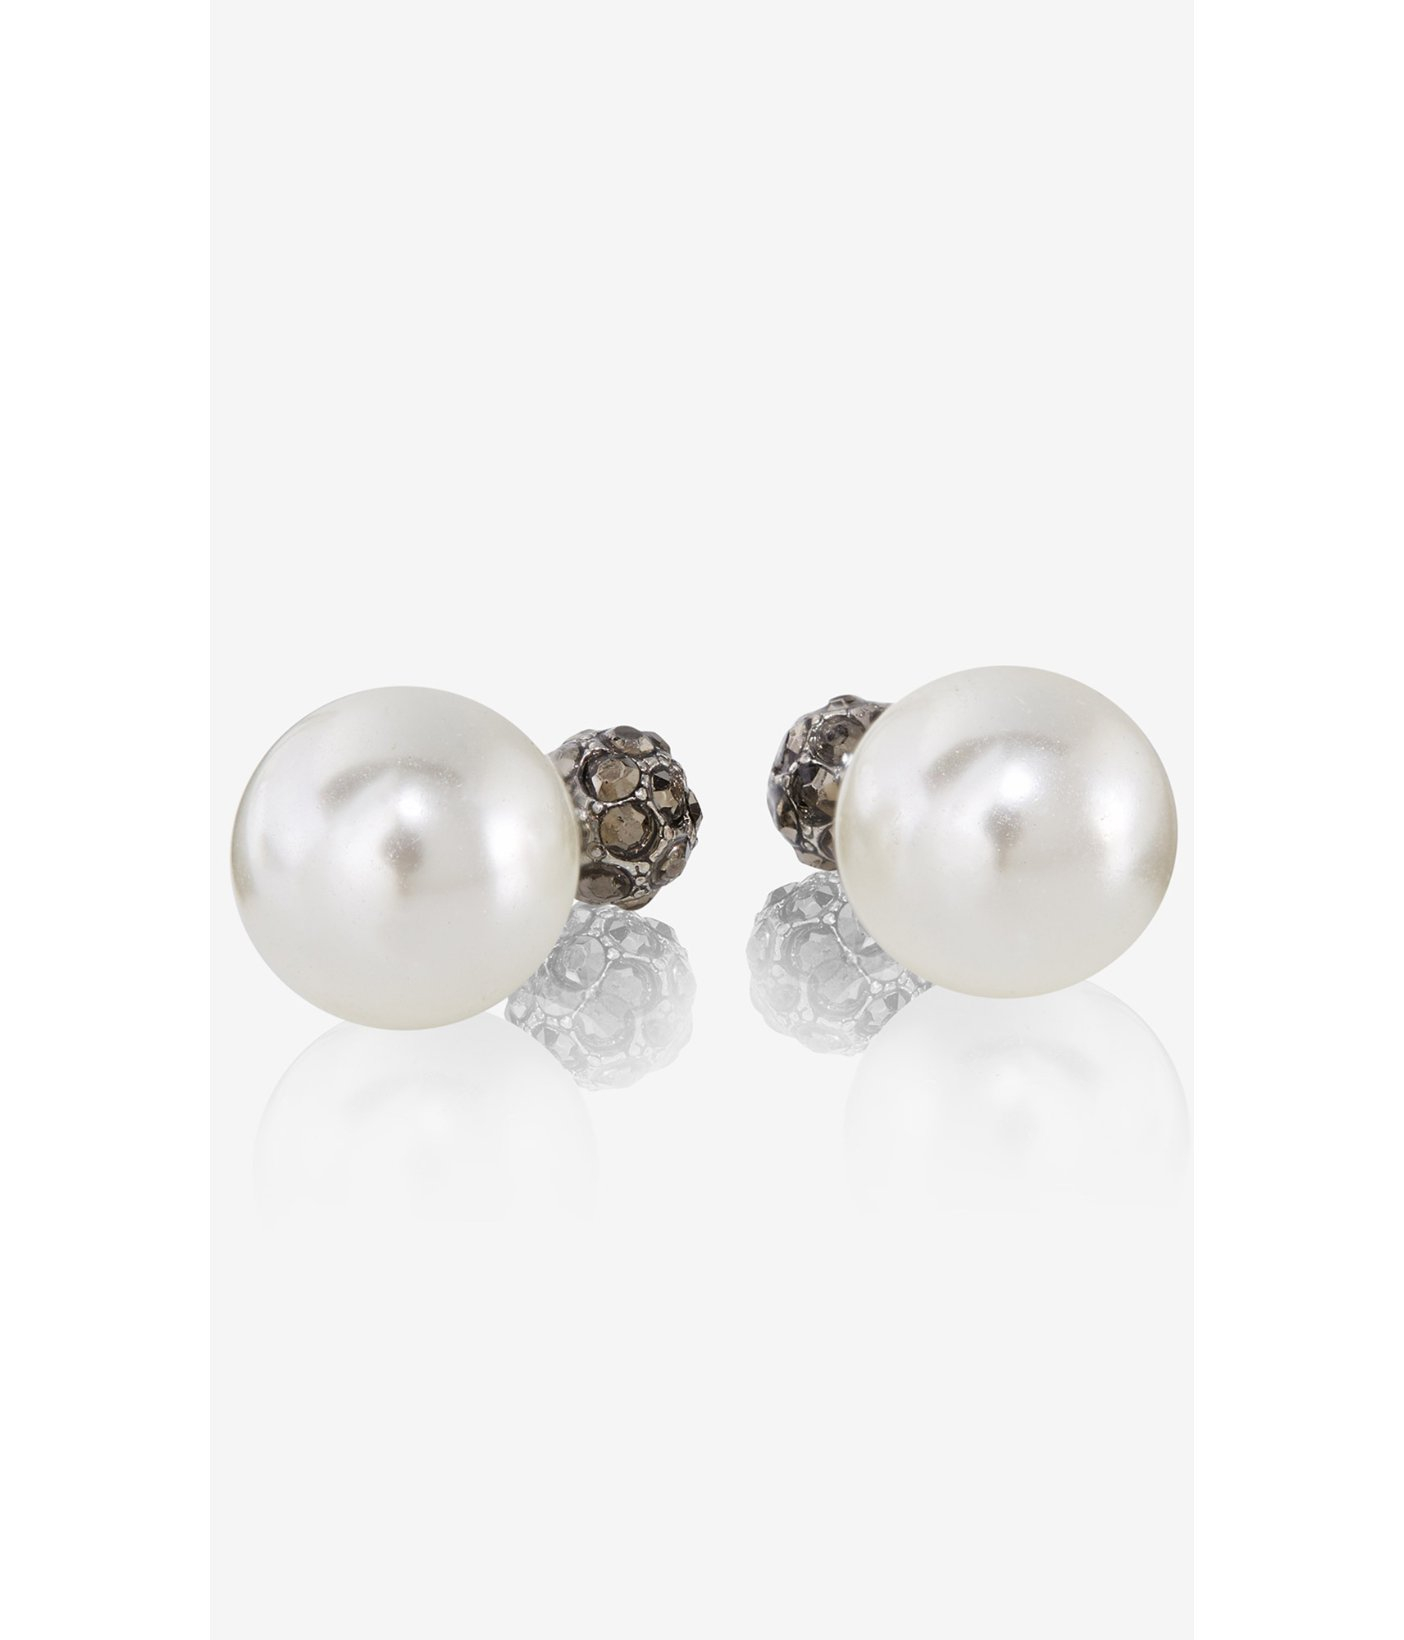 front and back pearl earrings lyst express fireball front and back stud earrings in white 2586